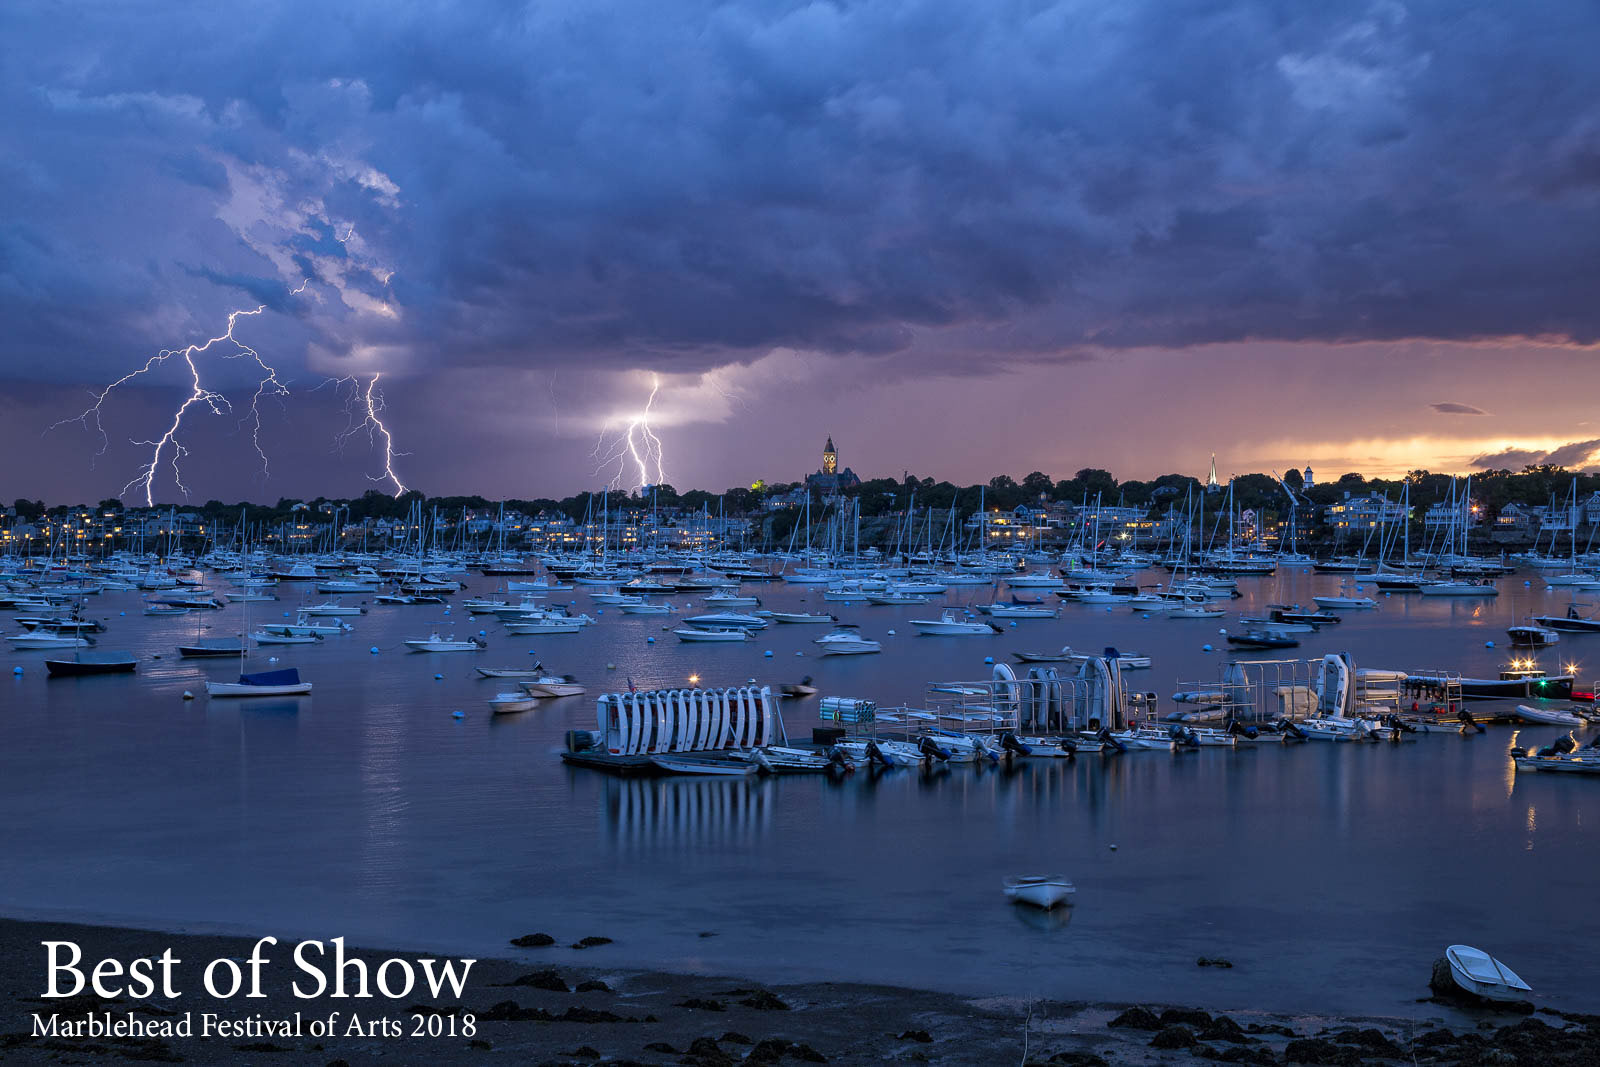 Best of Show - Marblehead Festival of Arts